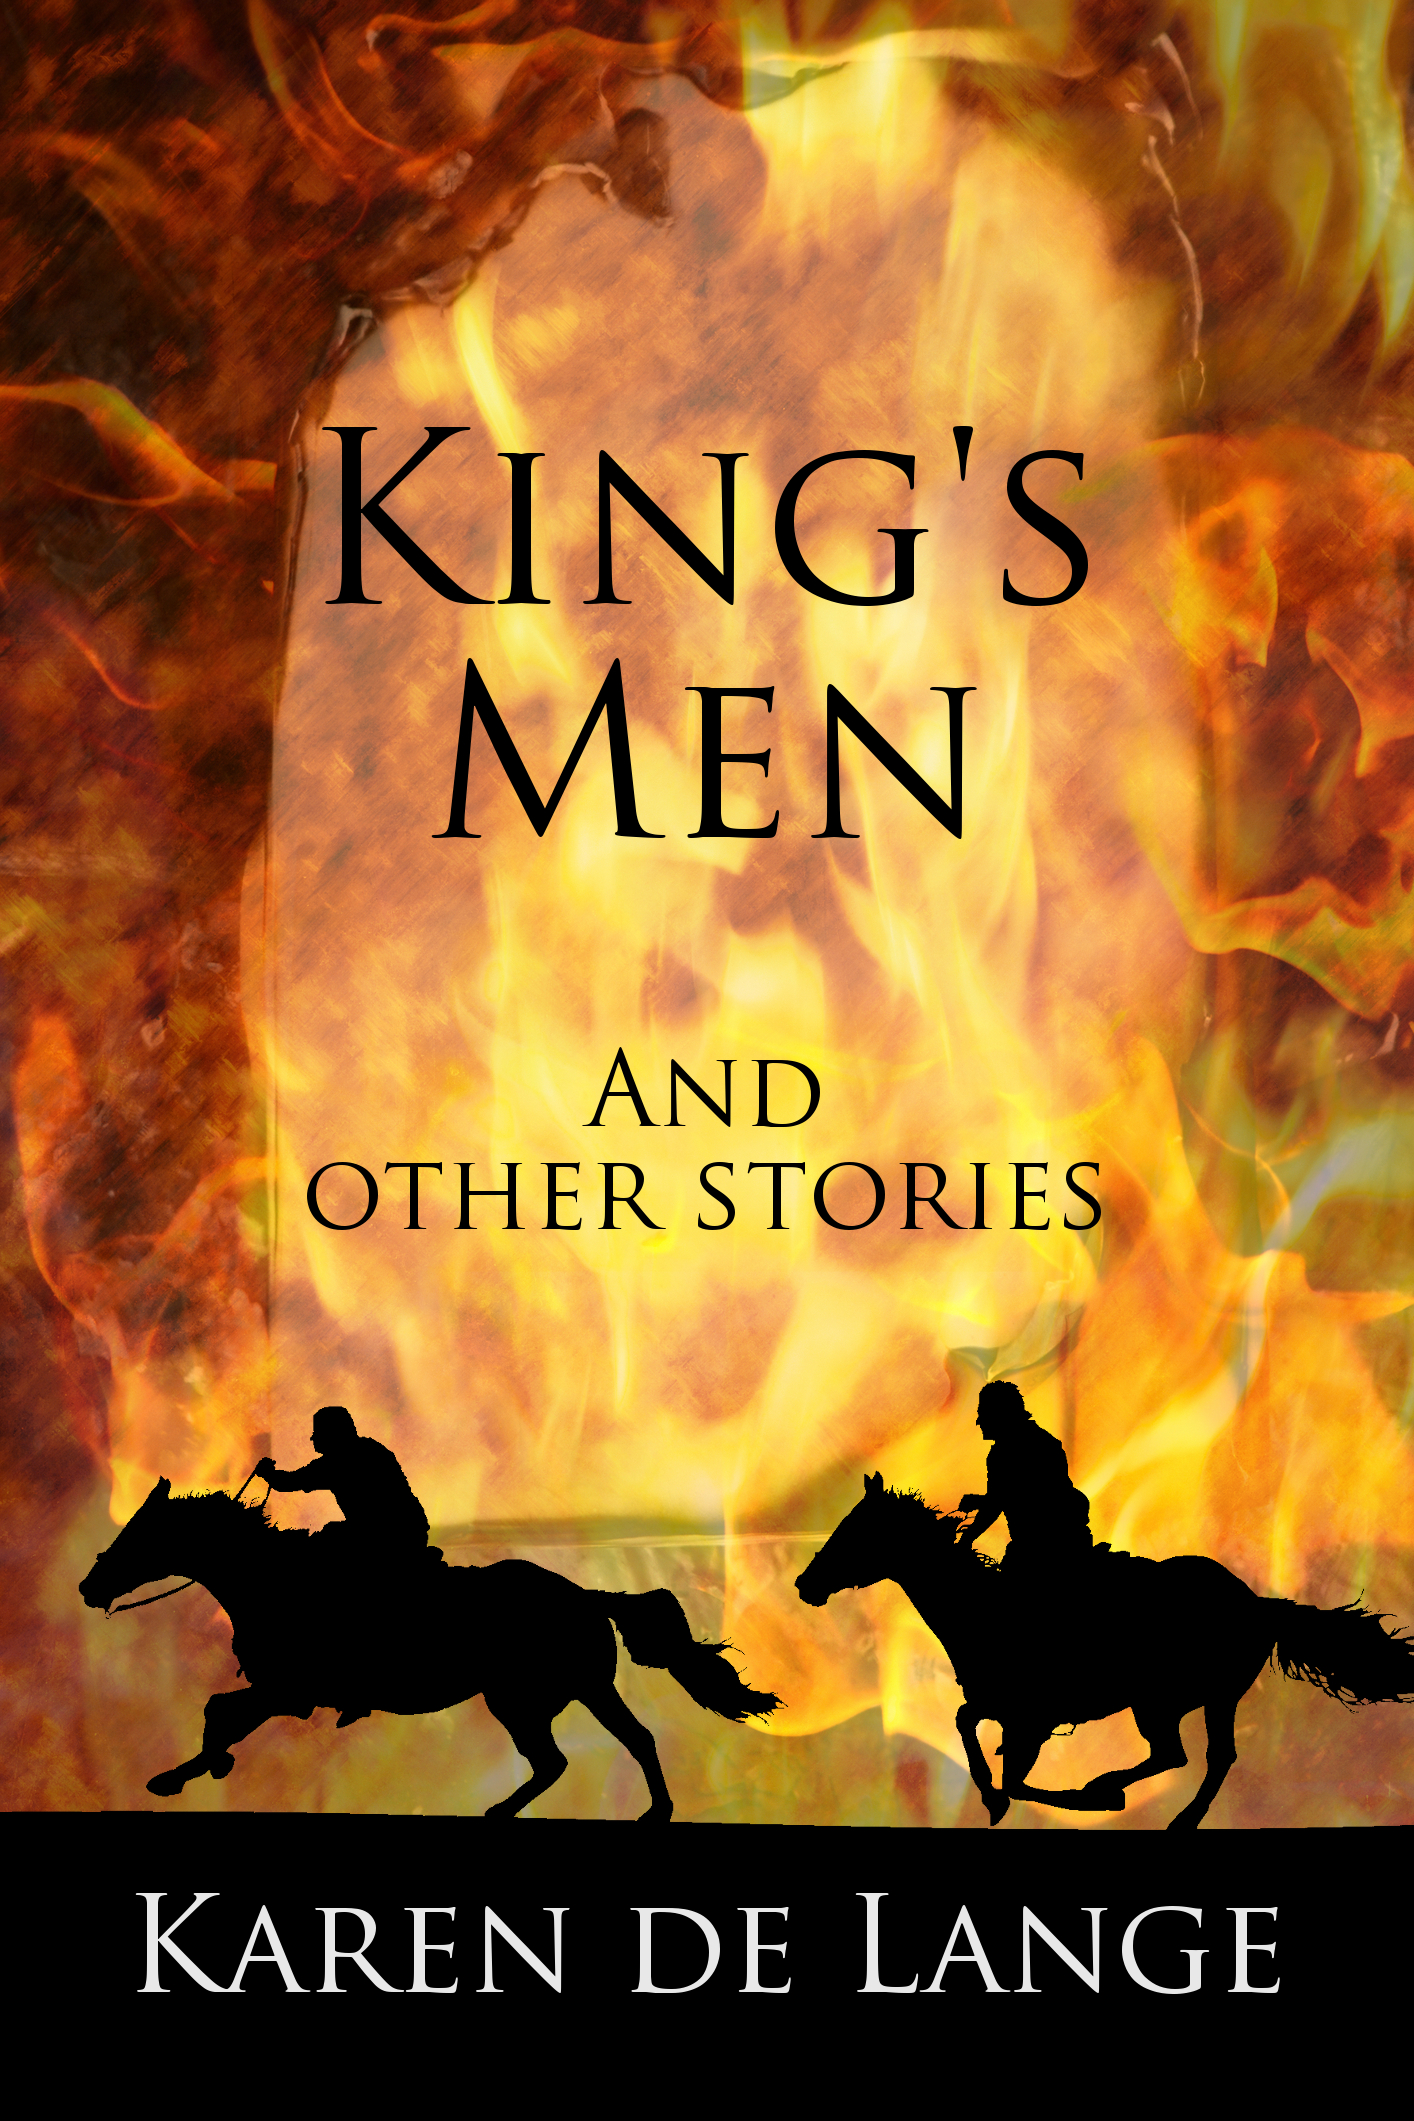 King's Men and Other Stories